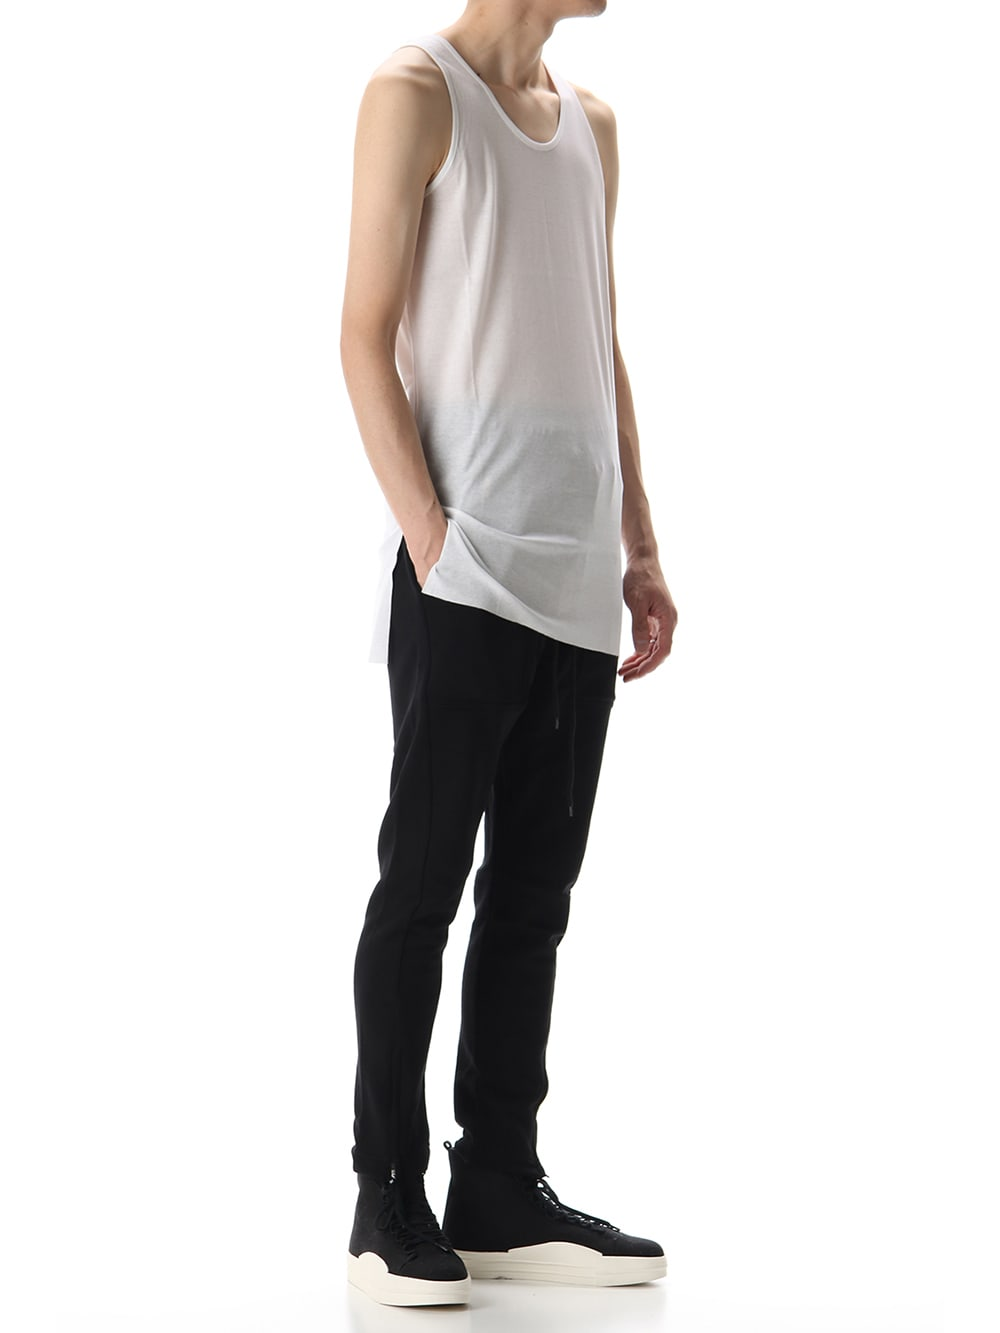 DIET BUTCHER SLIM SKIN 20SS Collection 3rd Delivery!! - 1-011